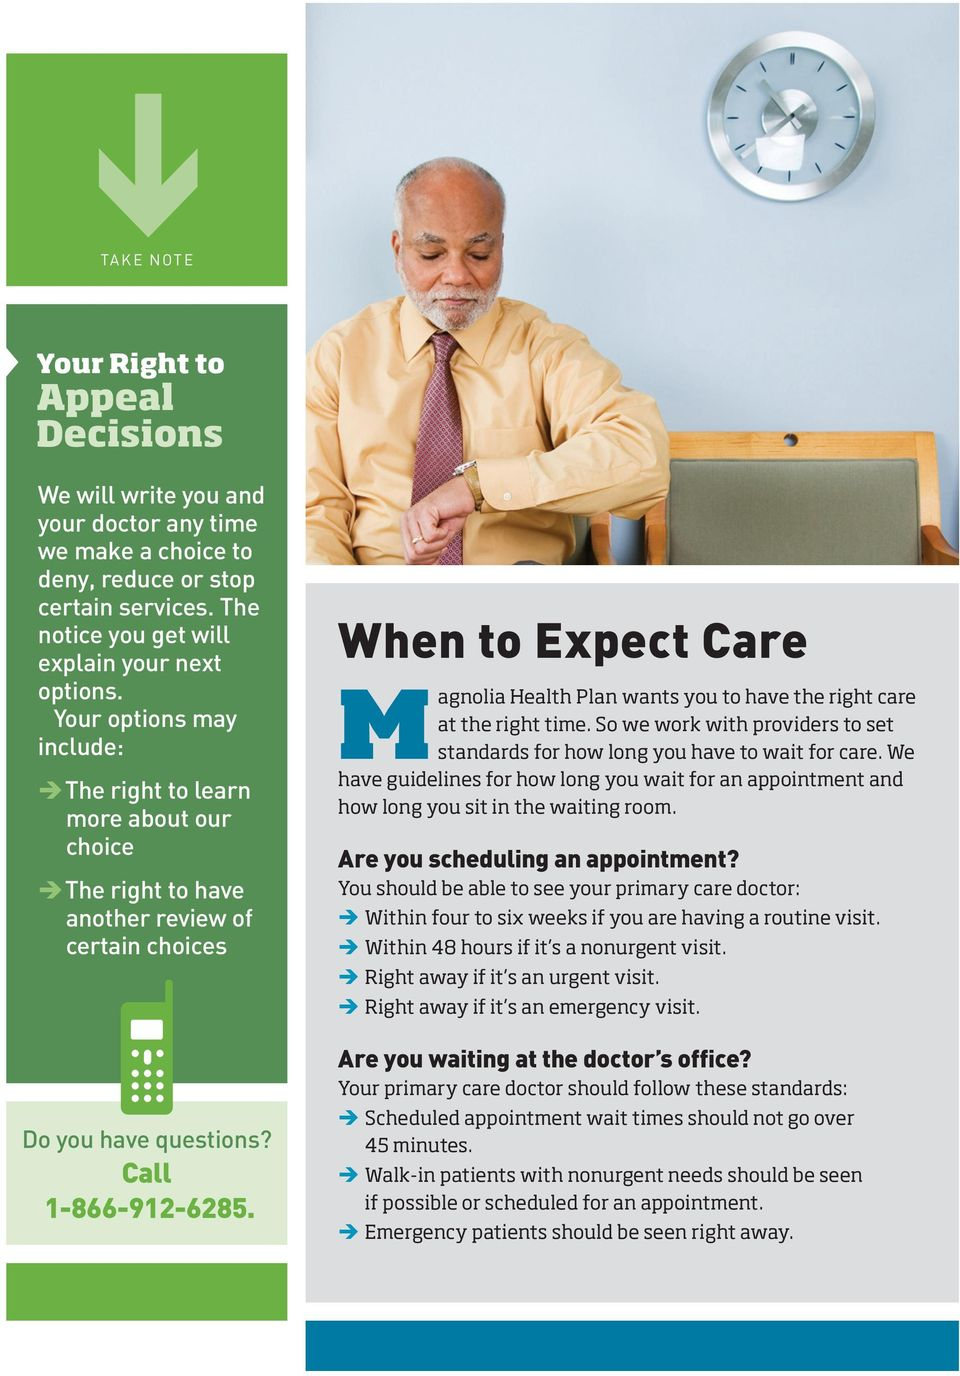 When to Expect Care Magnolia Health Plan wants you to have the right care at the right time. So we work with providers to set standards for how long you have to wait for care.